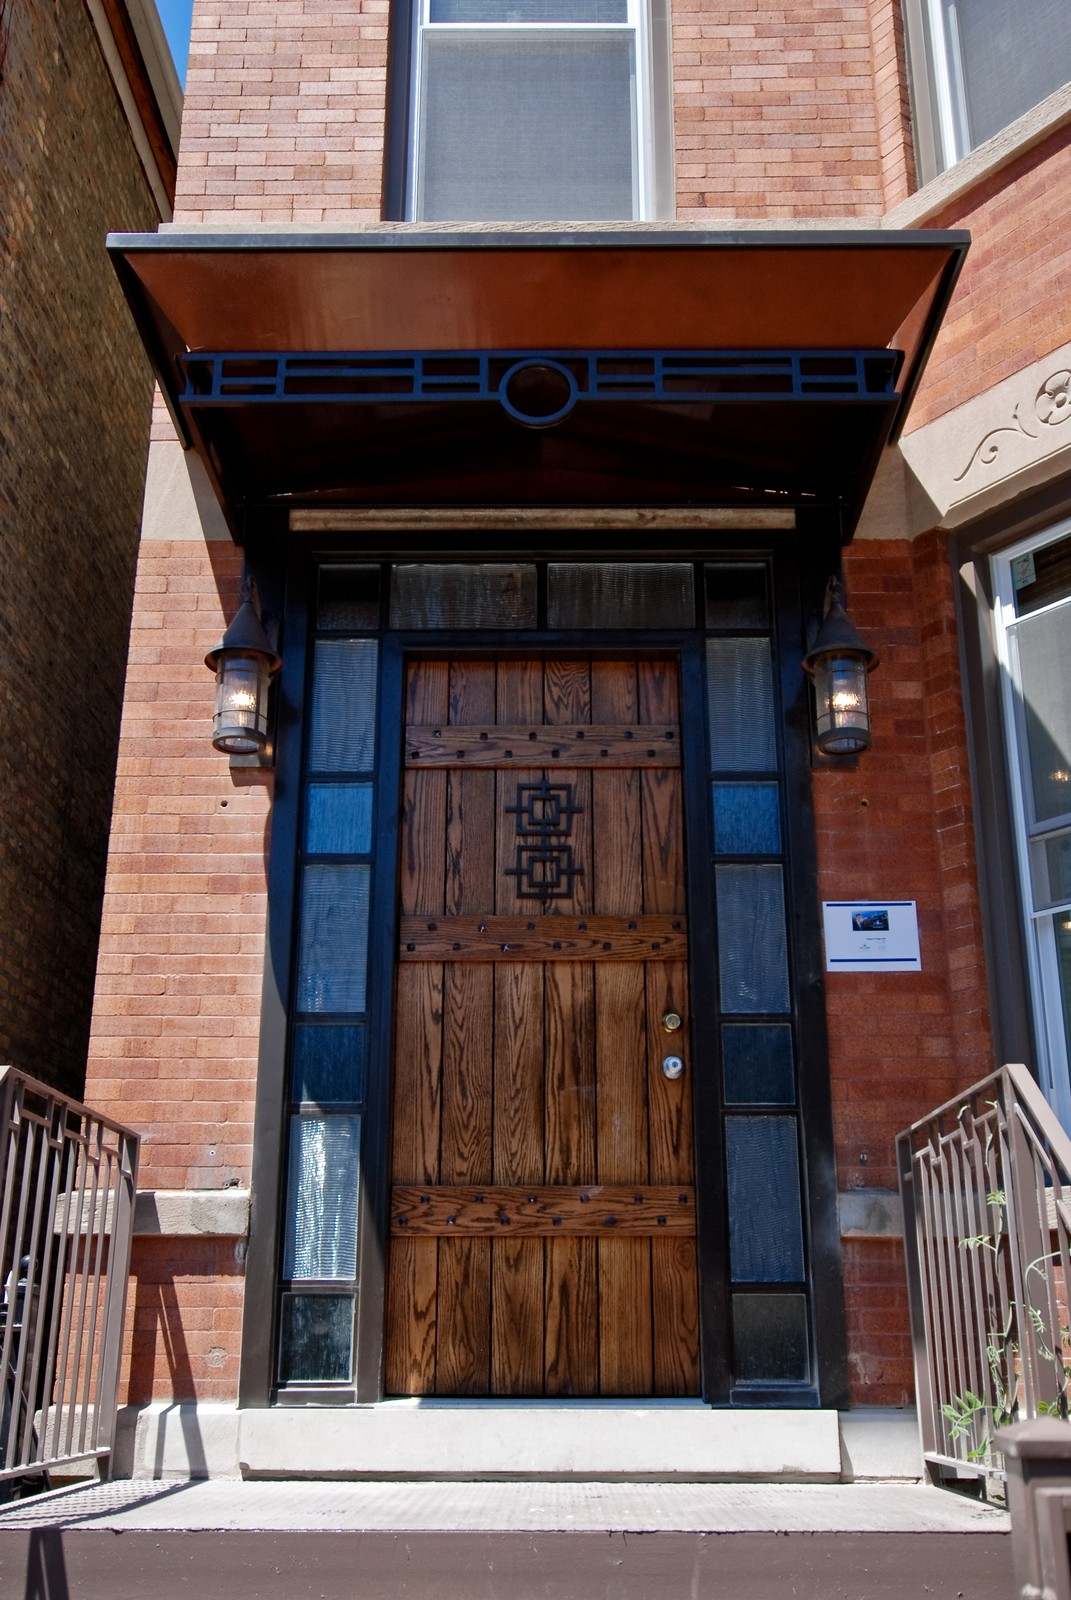 Real Estate Photography - 1744 W Augusta, Chicago, IL, 60622 - Location 1